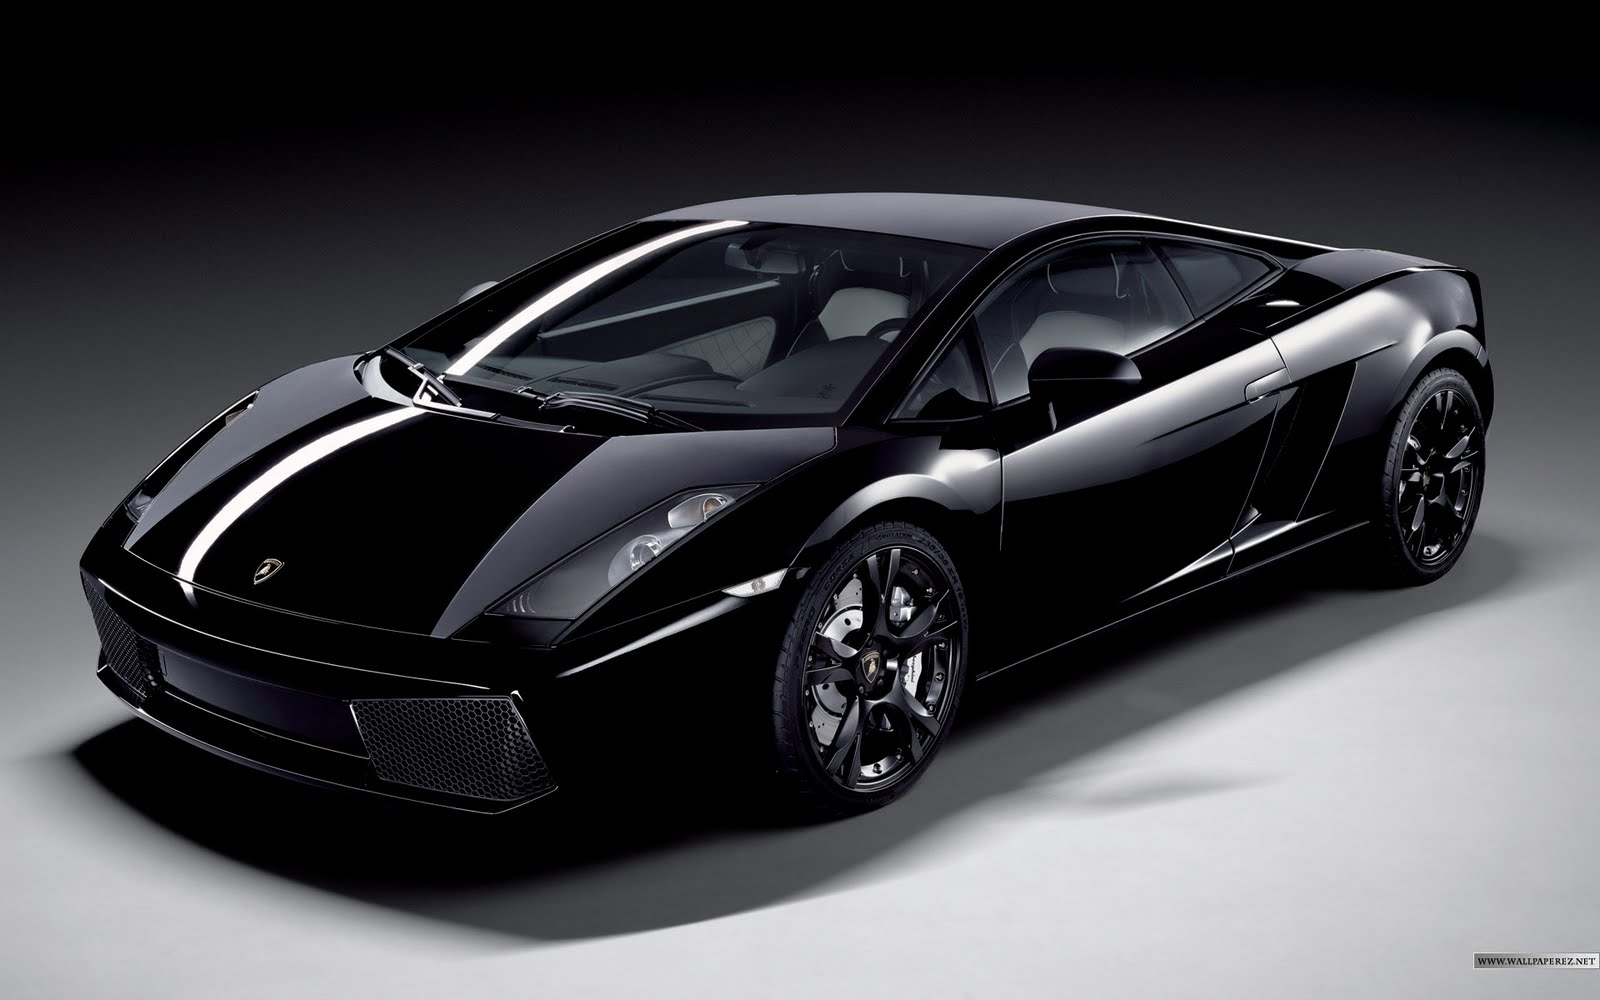 New Lamborghini Gallardo 2011 Car Under 500 Dollars